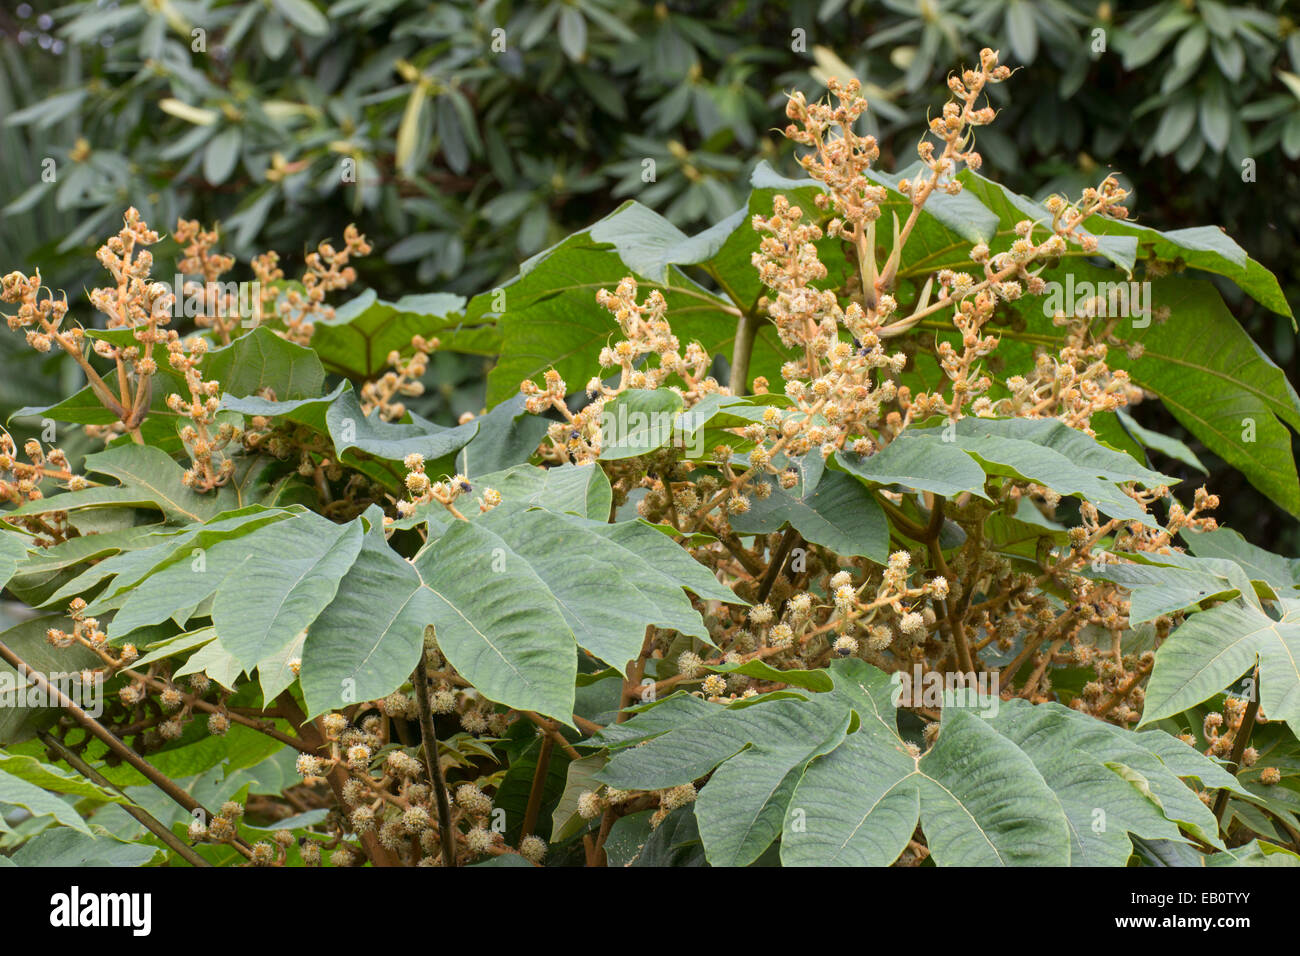 Late autumn flowers stand above the massive foliage of the rice paper plant, Tetrapanax papyrifer - Stock Image